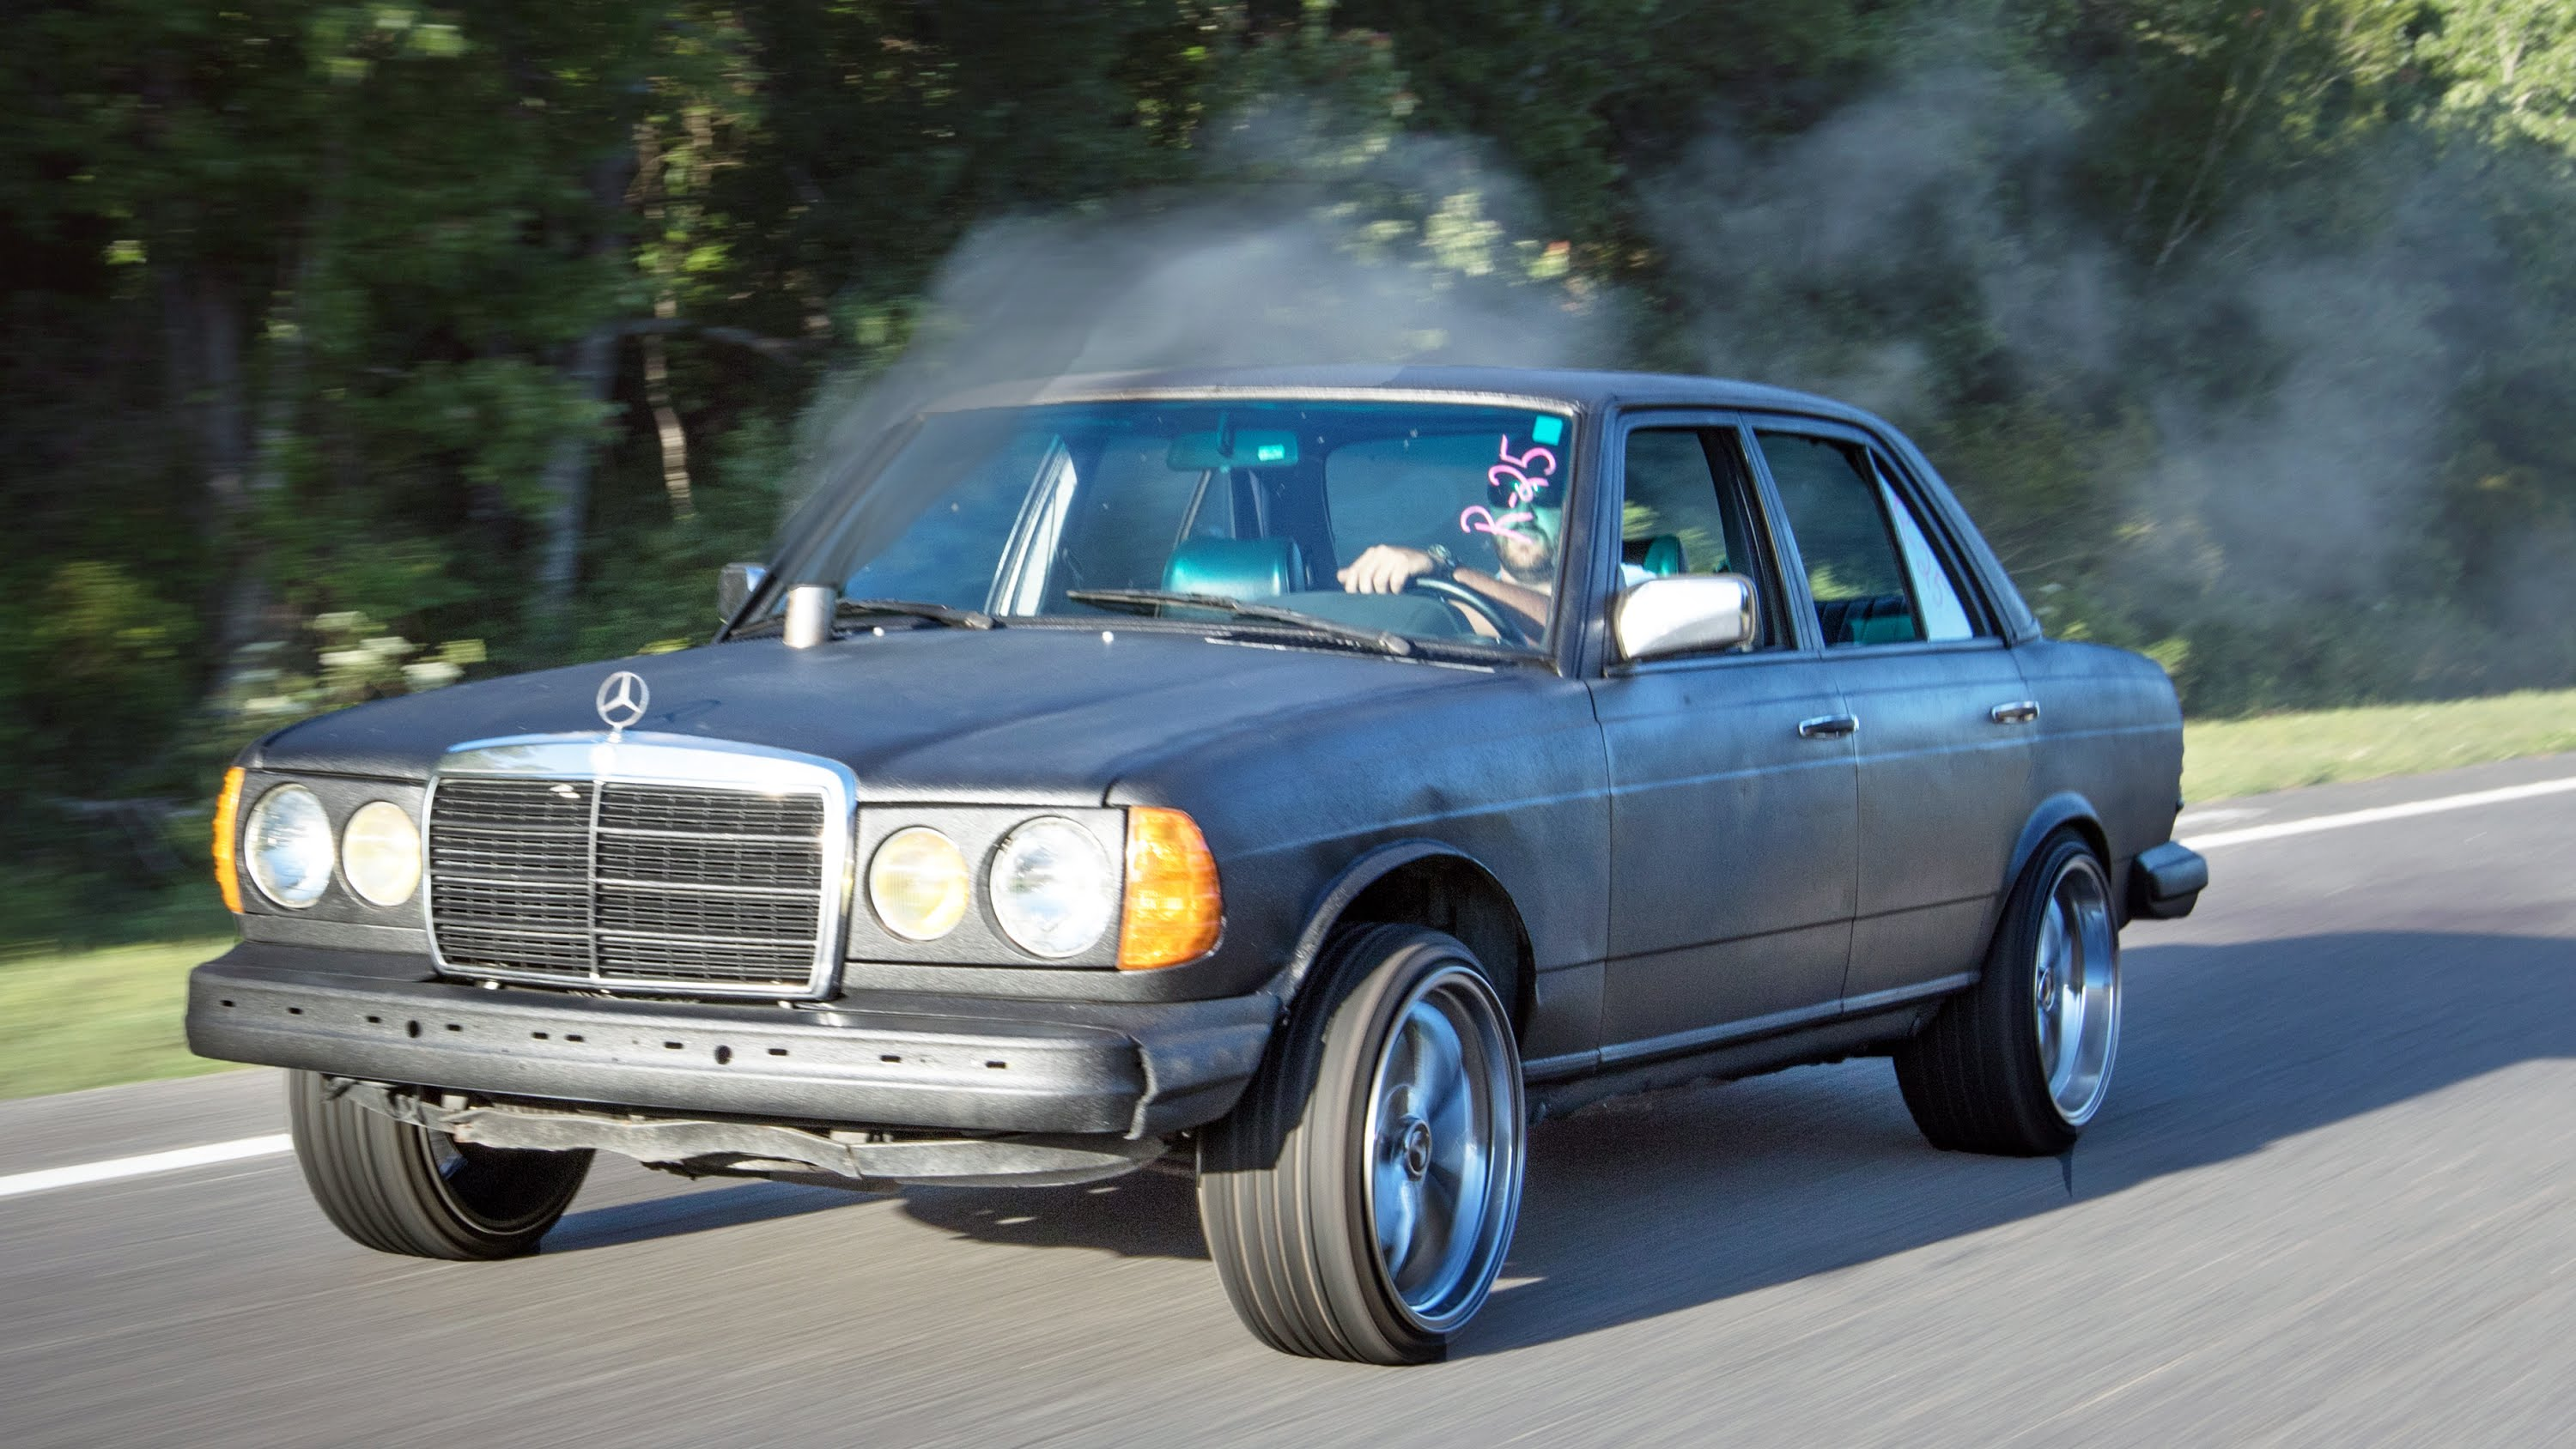 This Rolling Coal Mercedes Owns The Drag Racing Strip Like The ...